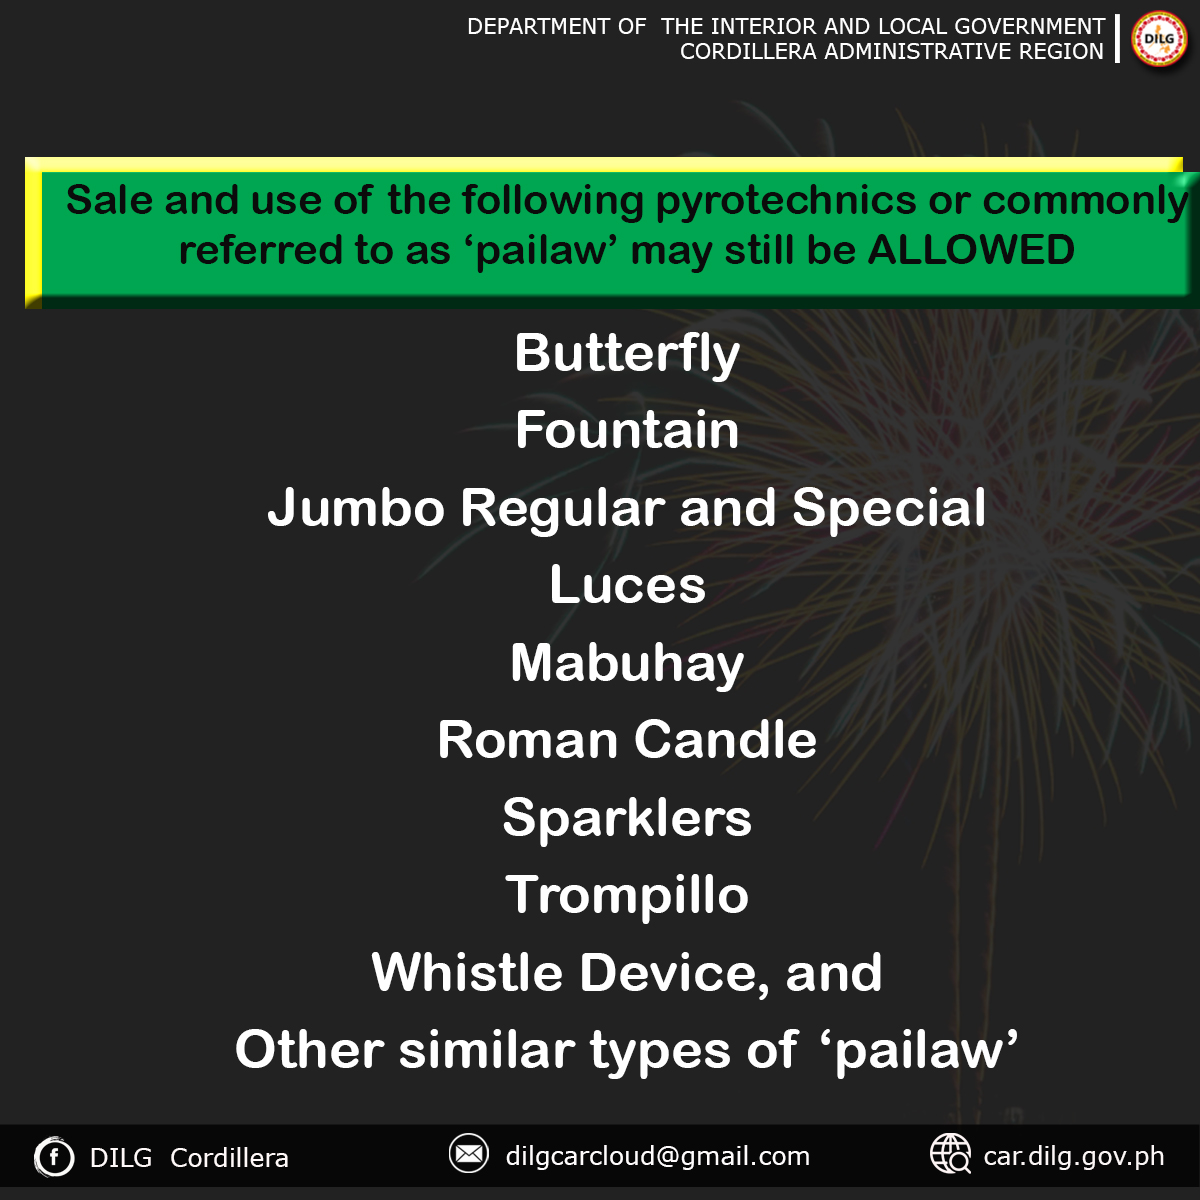 DILG, PROCor enforces regulations in the use of firecrackers, pyrotechnic devices